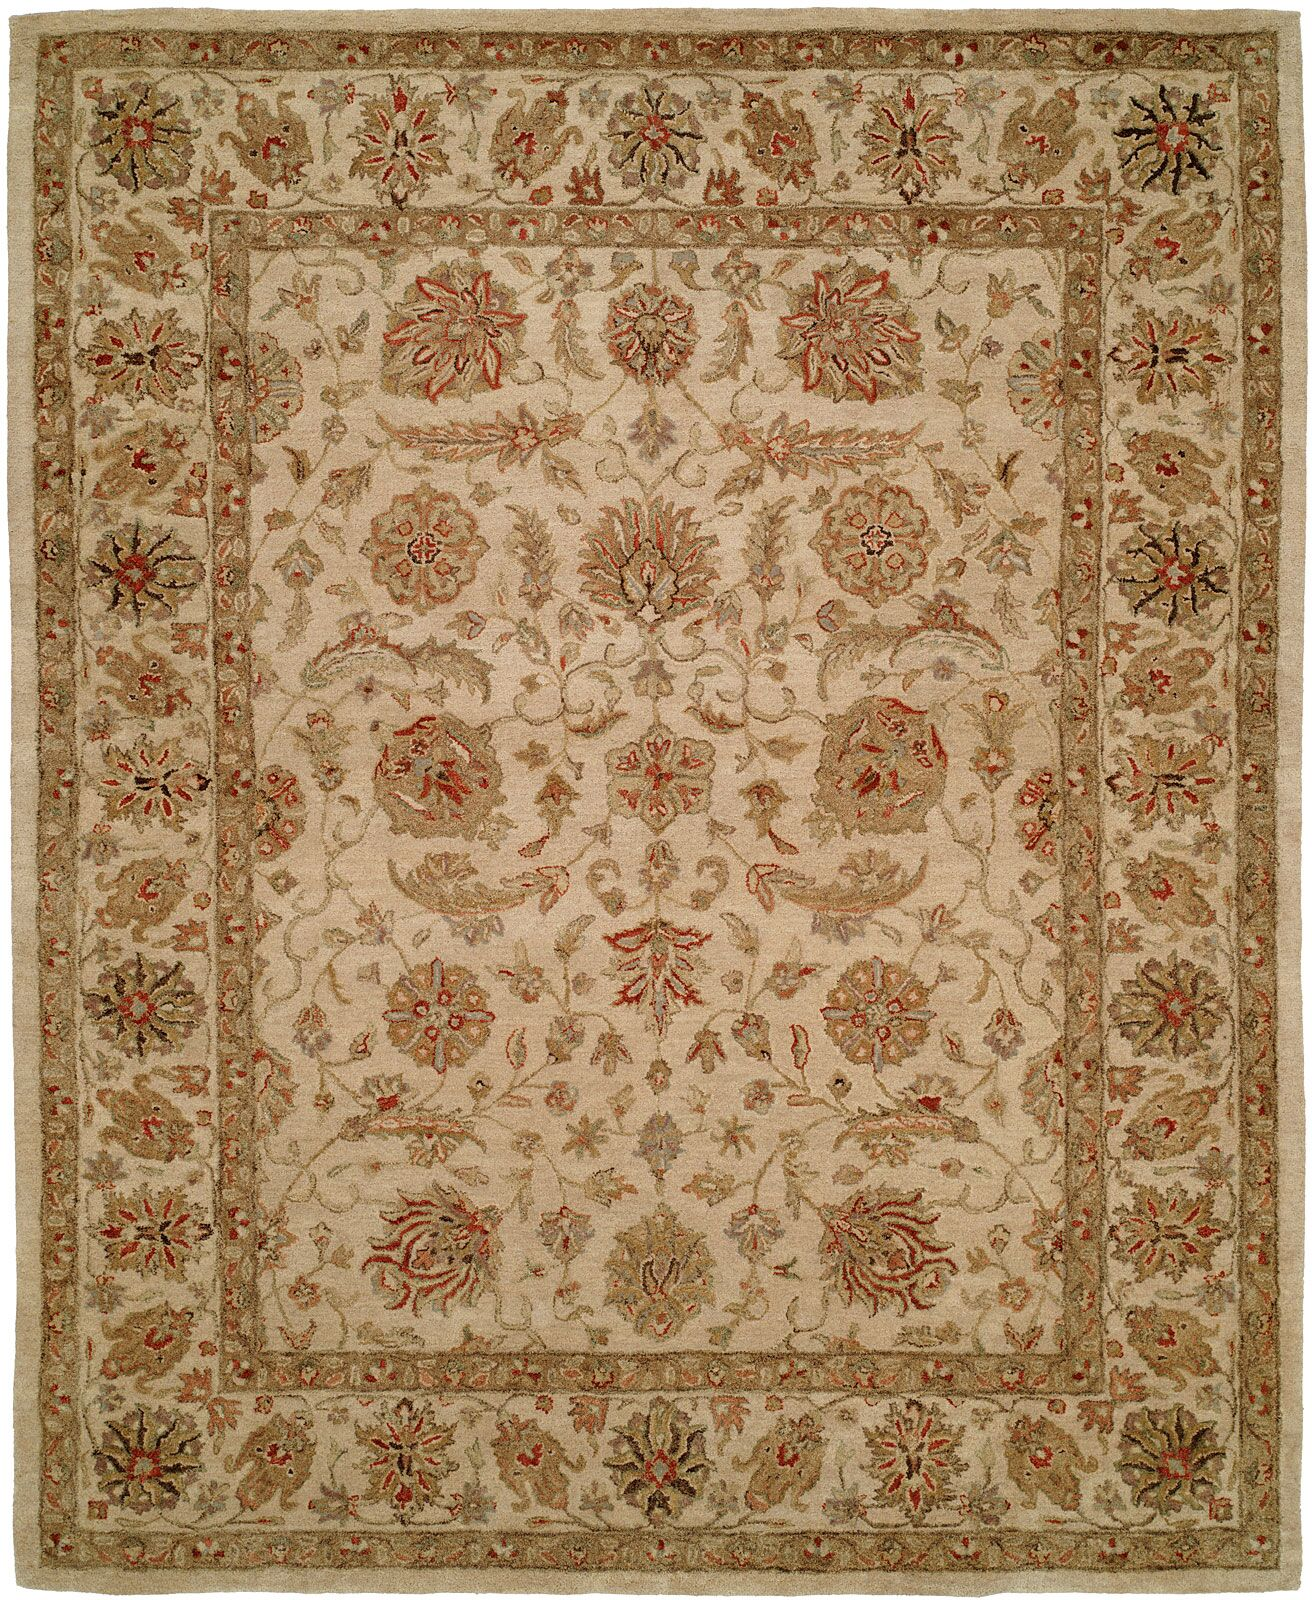 Biswas Hand-Woven Beige Area Rug Rug Size: Rectangle 8' x 10'